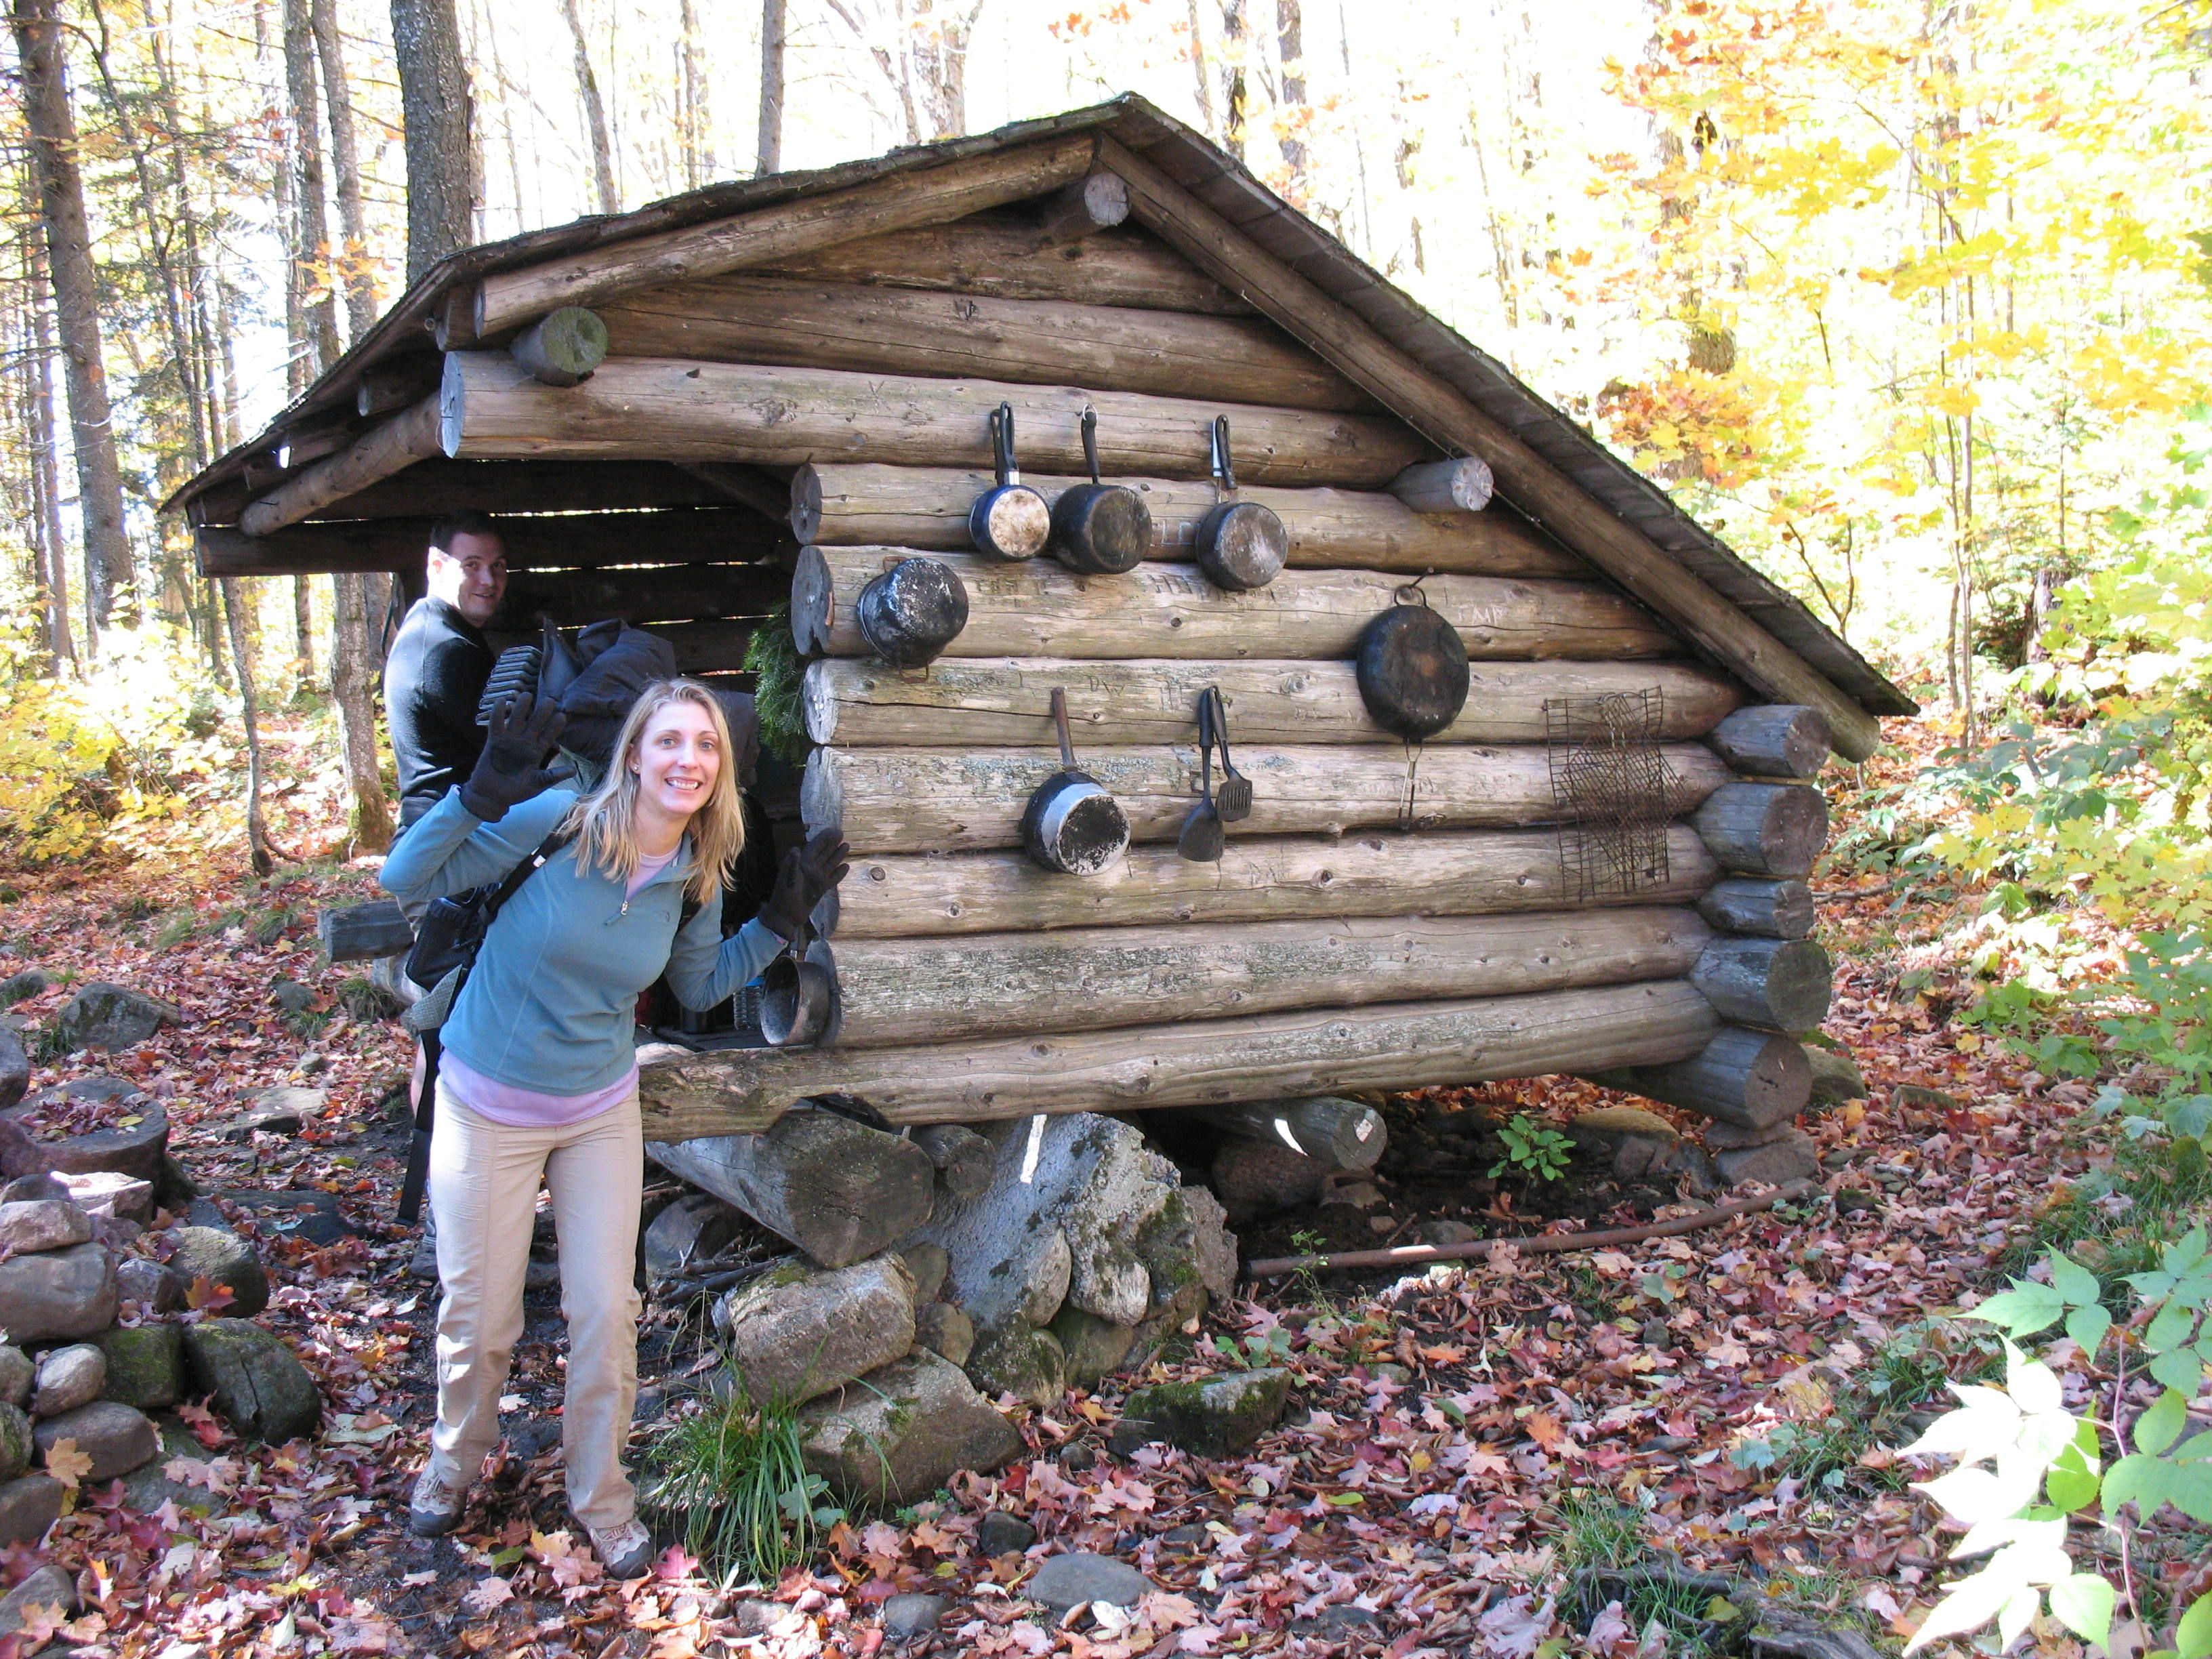 Cheap Hunting Cabin Ideas Adirondack Lean To Google Search Great Camp